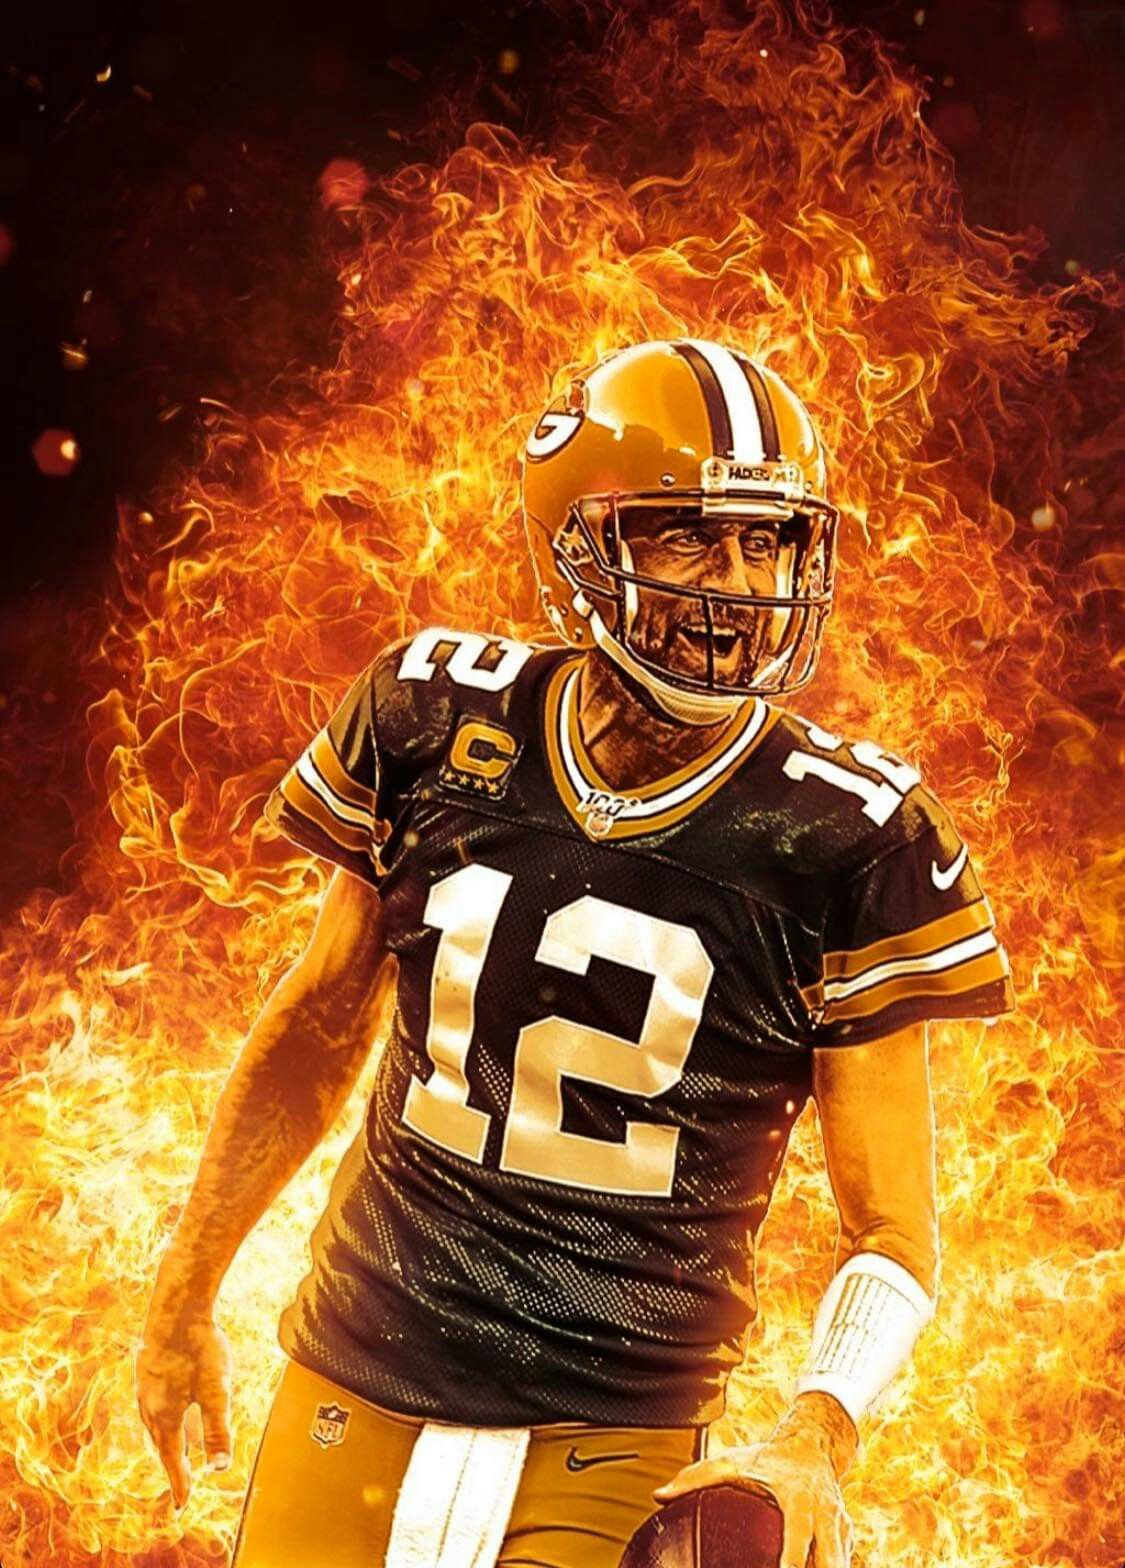 Pin By Patricia Raether On Green Bay Packers In 2020 Green Bay Packers Aaron Rodgers Green Bay Packers Packers